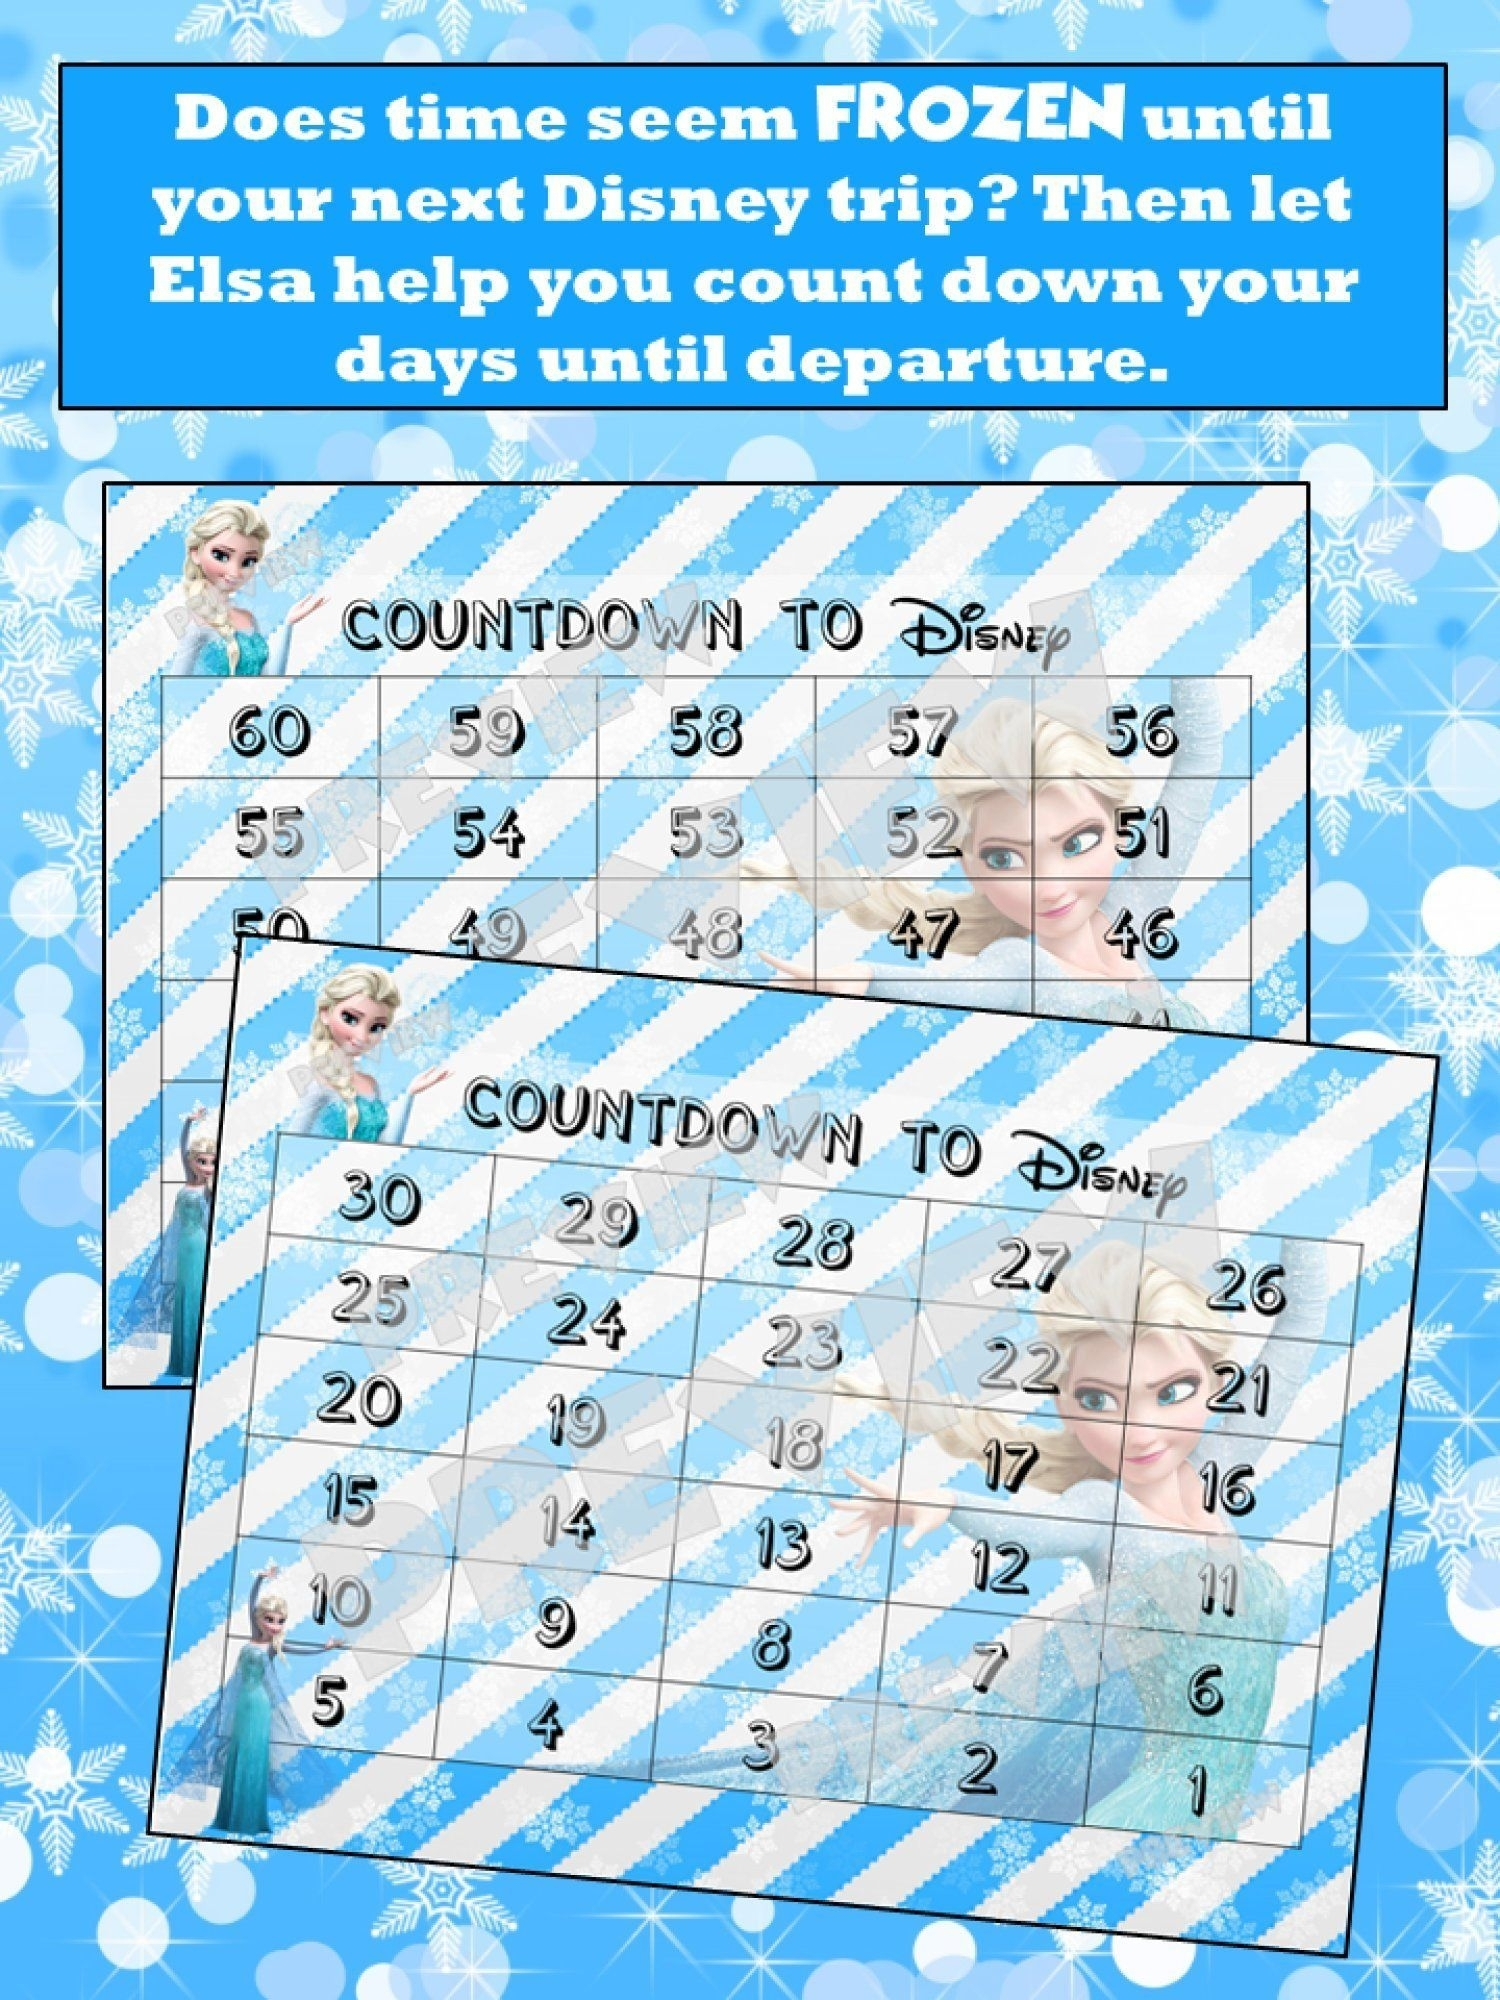 Disney Countdown Calendar - Elsa Frozen - Instant Download within Disney Cruise Countdown Calendar Out Of Paper